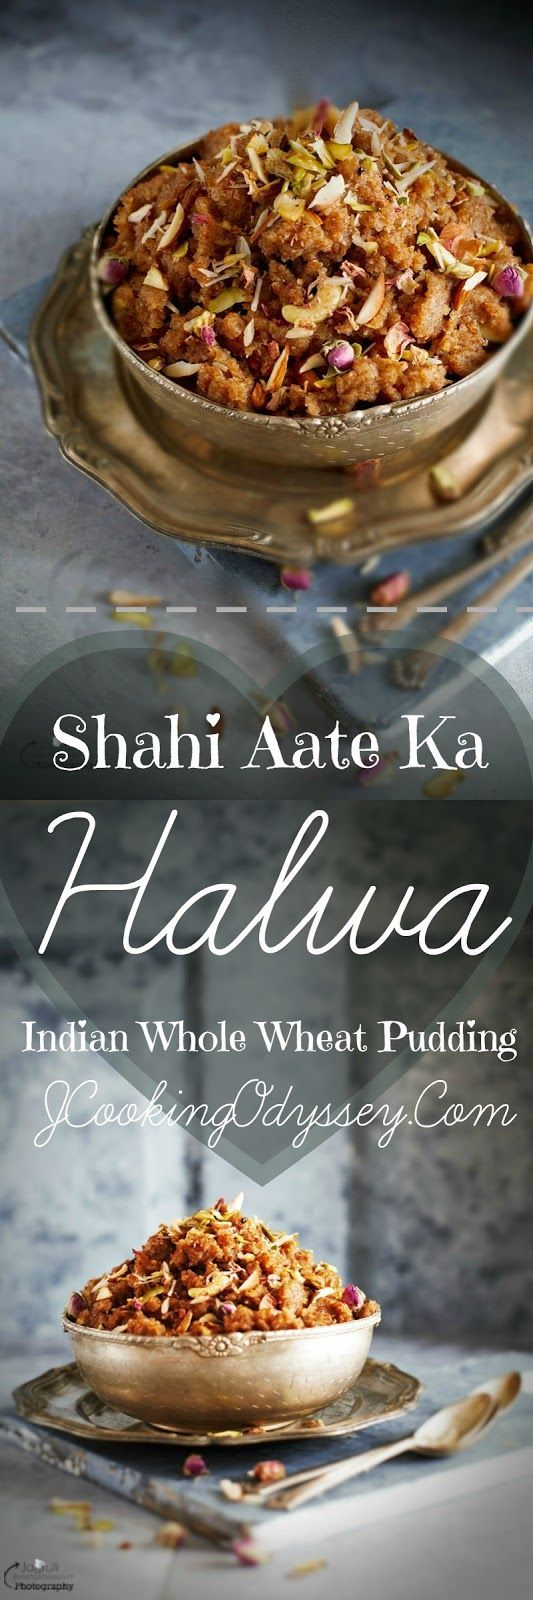 Jagruti's Cooking Odyssey: Shahi Aate / Atte Ka Halwa / Sheera - Indian Whole Wheat Pudding (scheduled via http://www.tailwindapp.com?utm_source=pinterest&utm_medium=twpin&utm_content=post113955461&utm_campaign=scheduler_attribution)